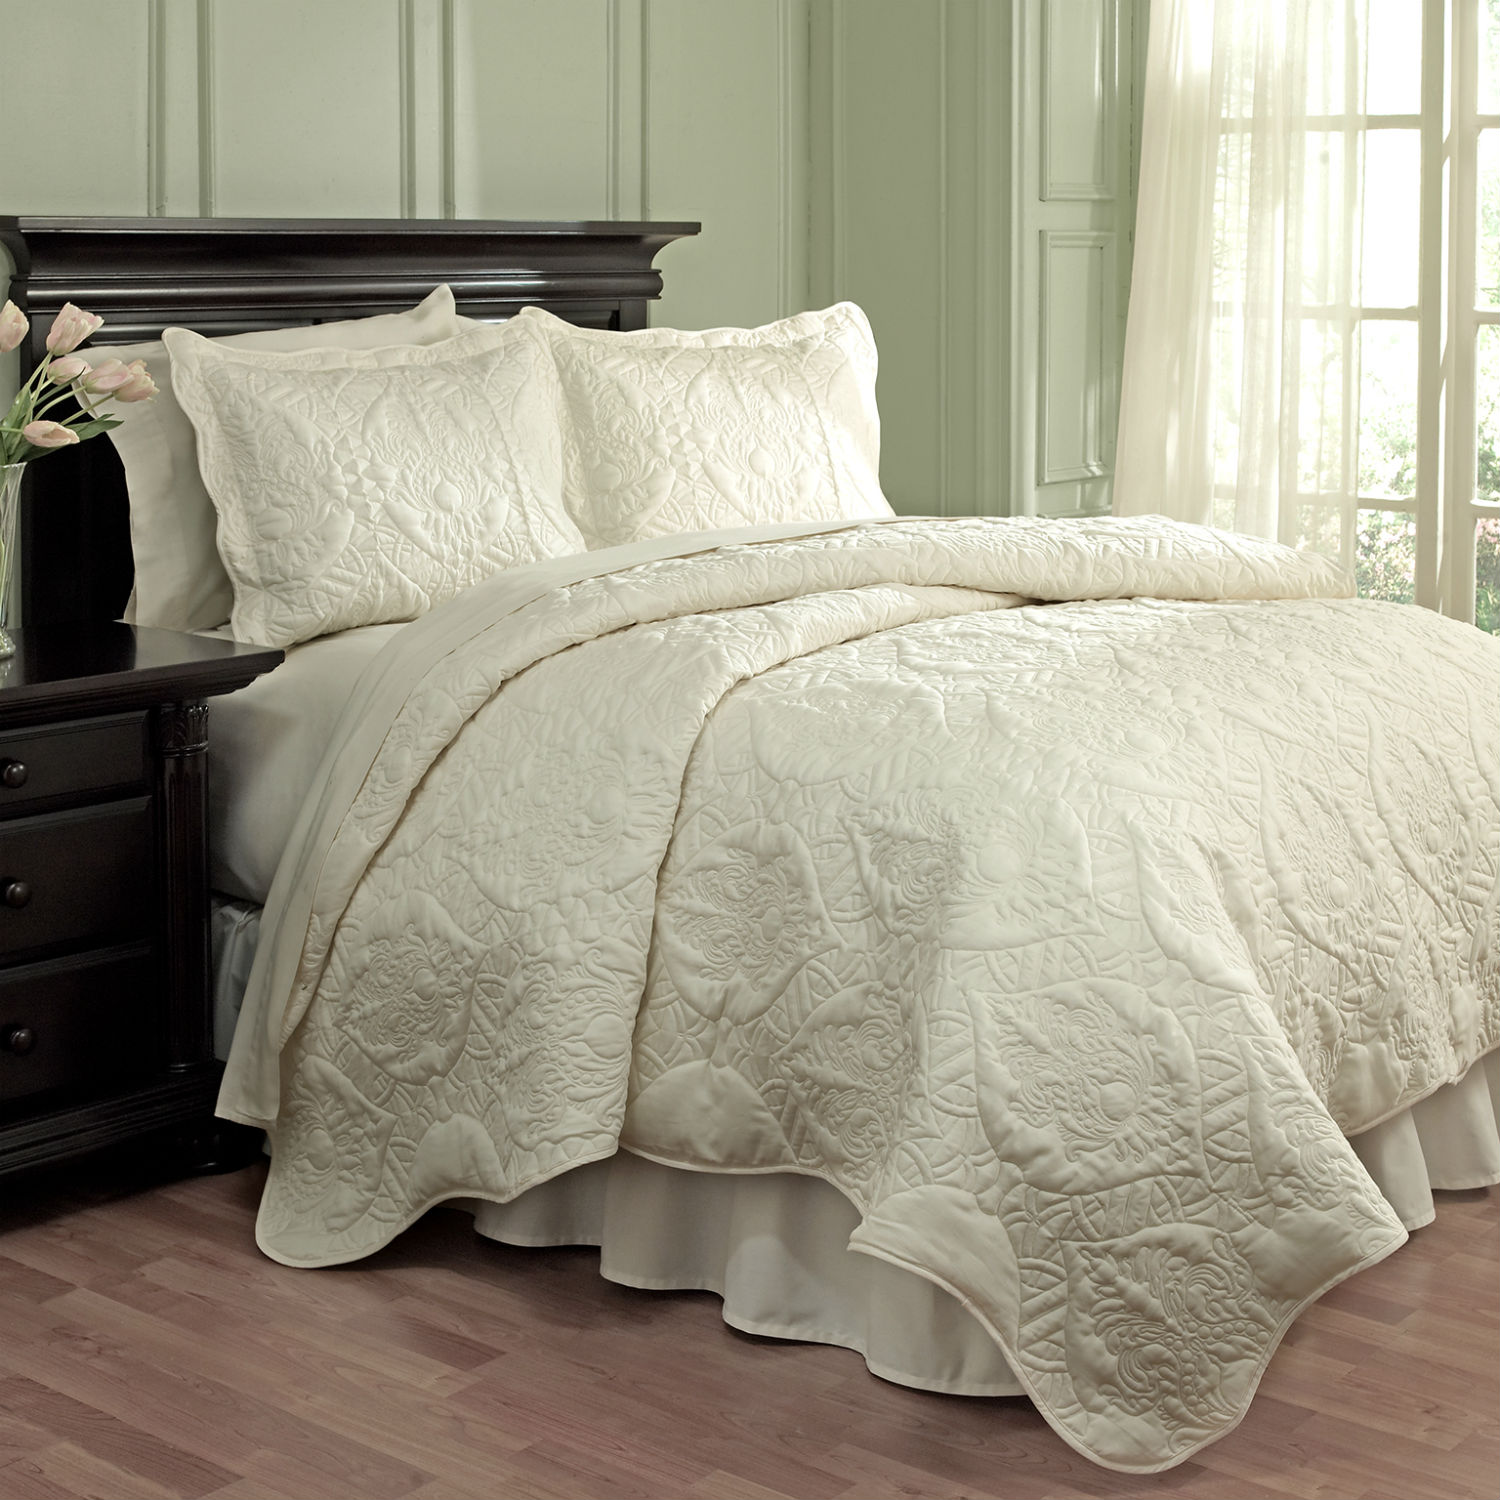 Dressed Up Damask Taupe by Waverly Bedding - BeddingSuperStore.com